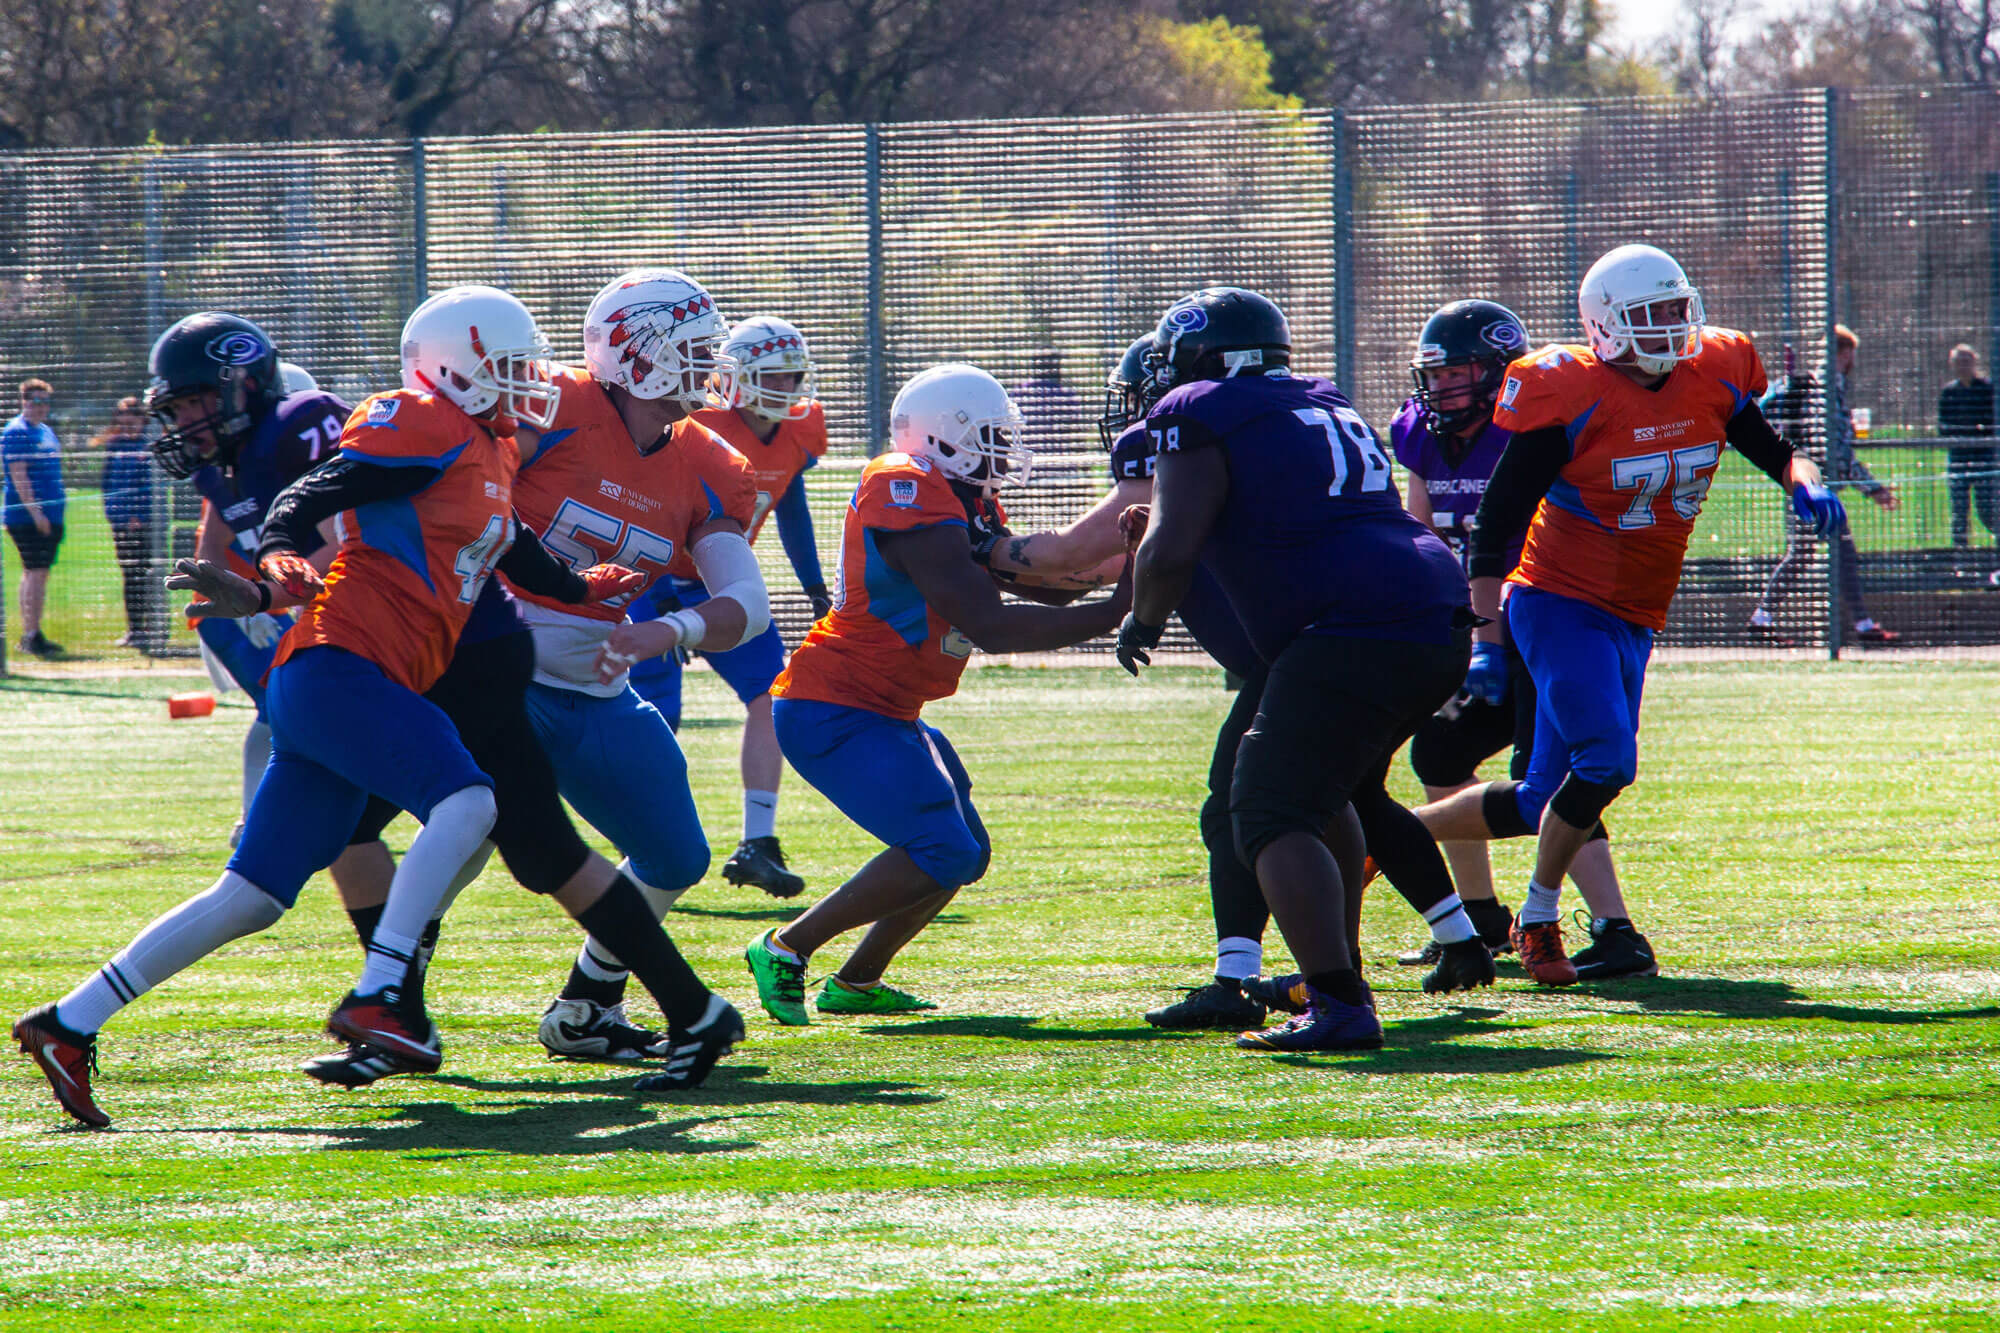 Team Derby playing American football